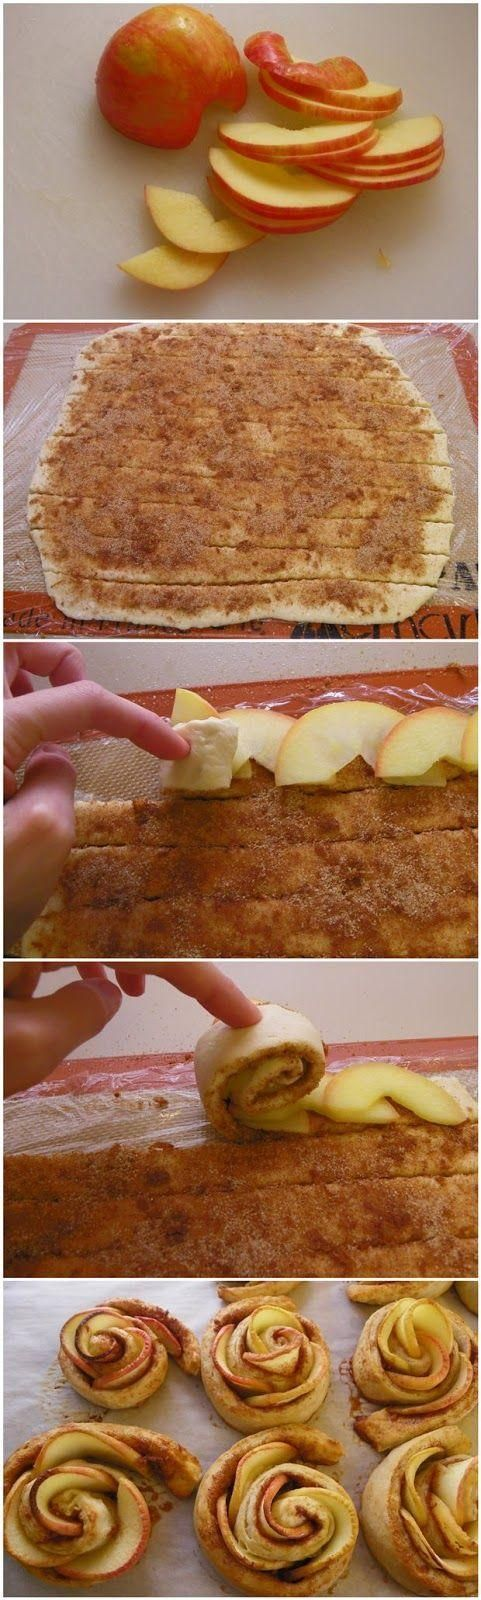 My new guilty pleasure healthy snack.Apple Roses Recipe ~ apples, puff pastry sheet and a cinnamon mixture.